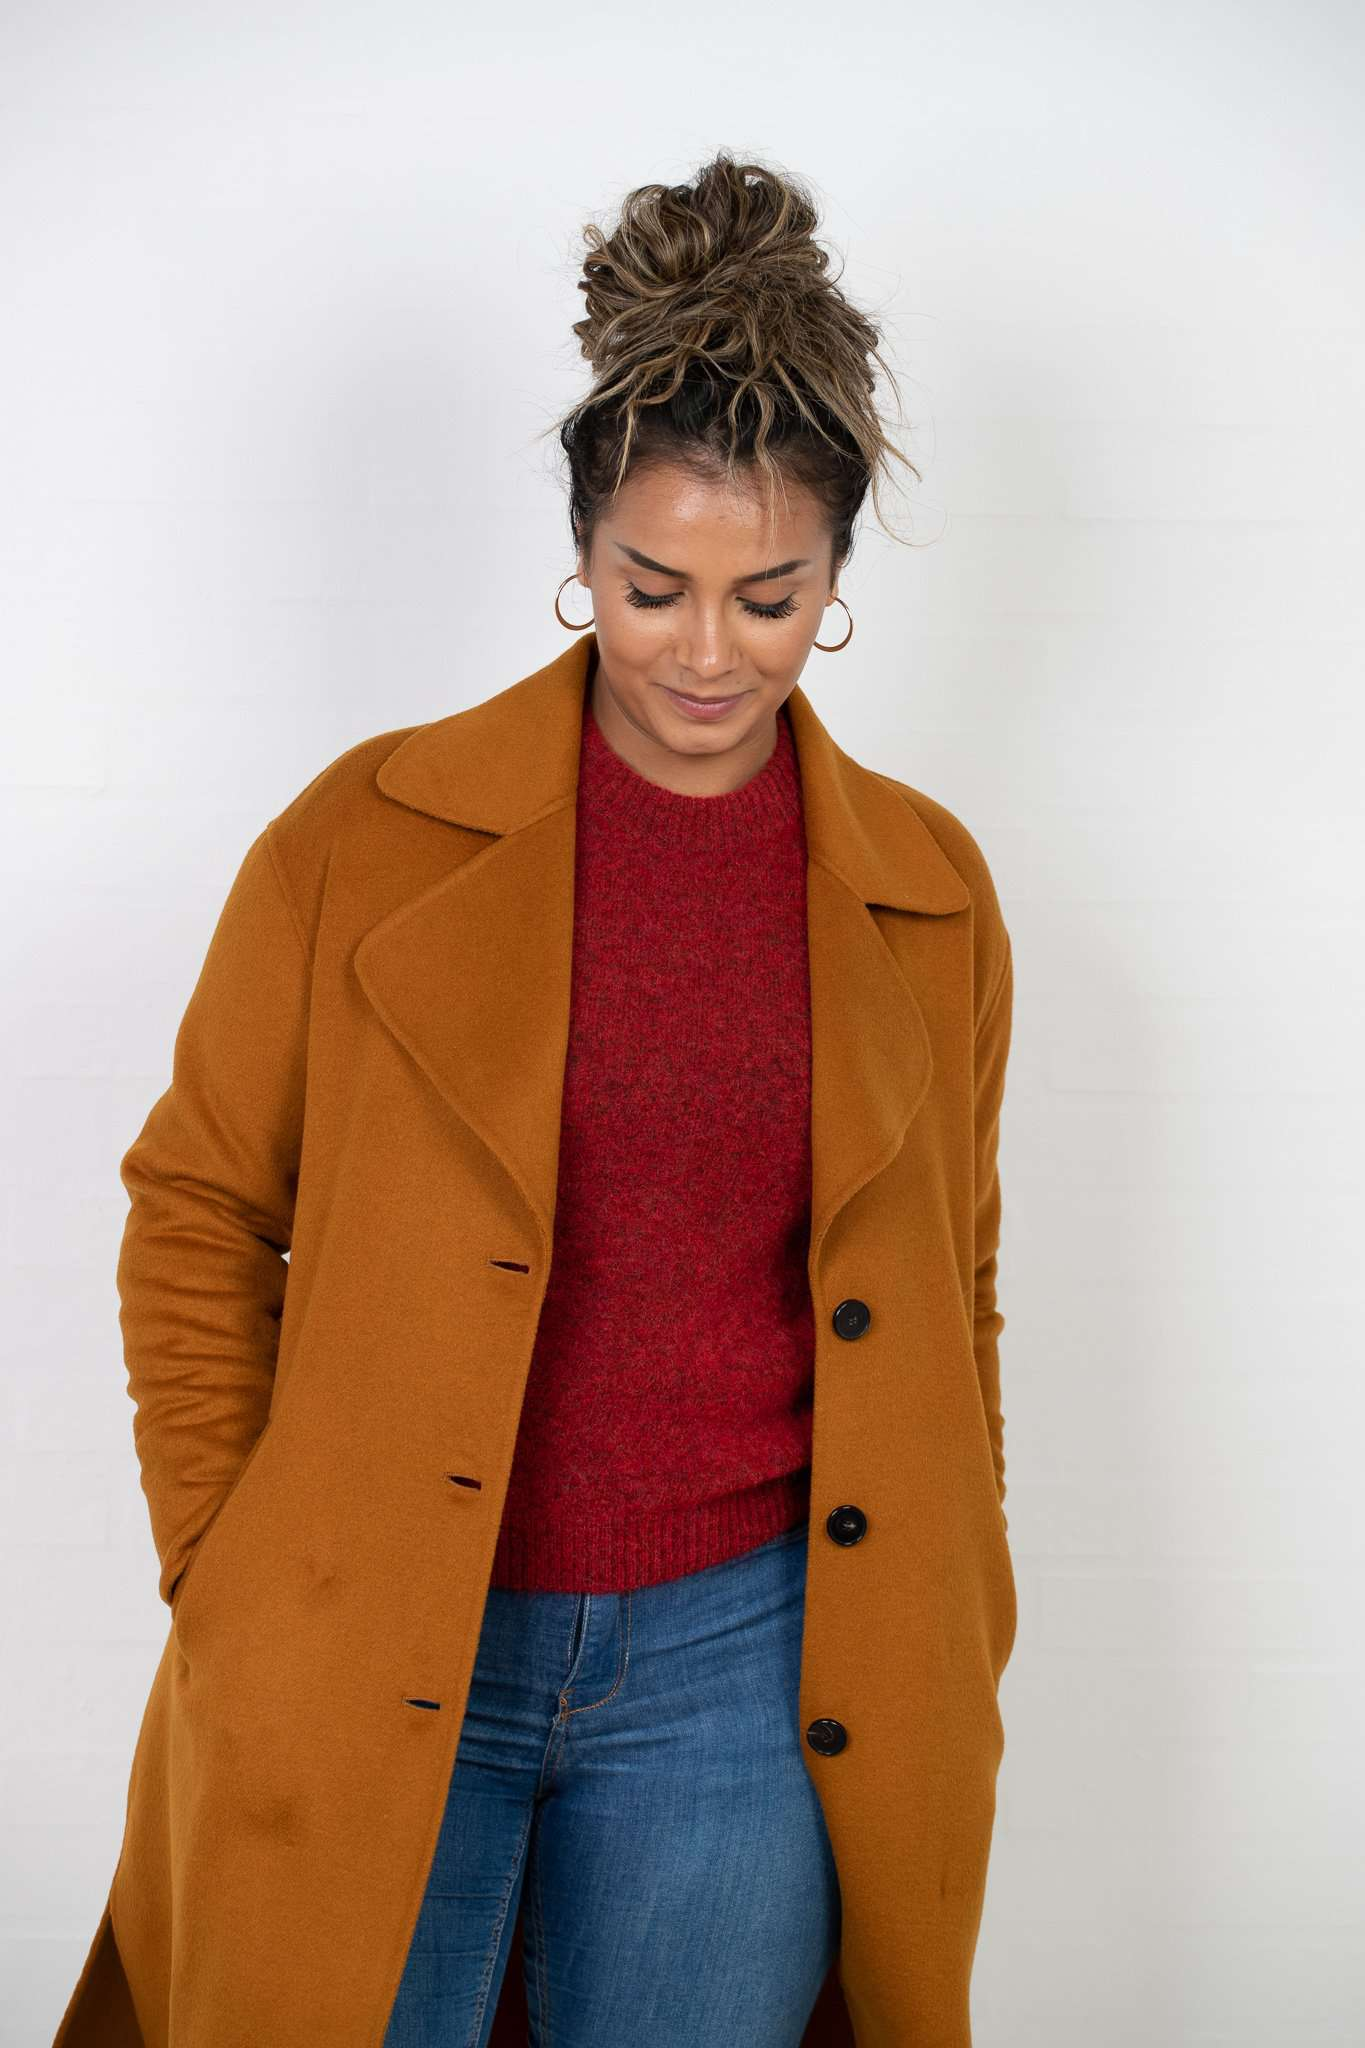 Image of   Oda Ida Coat - Spicy Mustard - Spicy Mustard XL